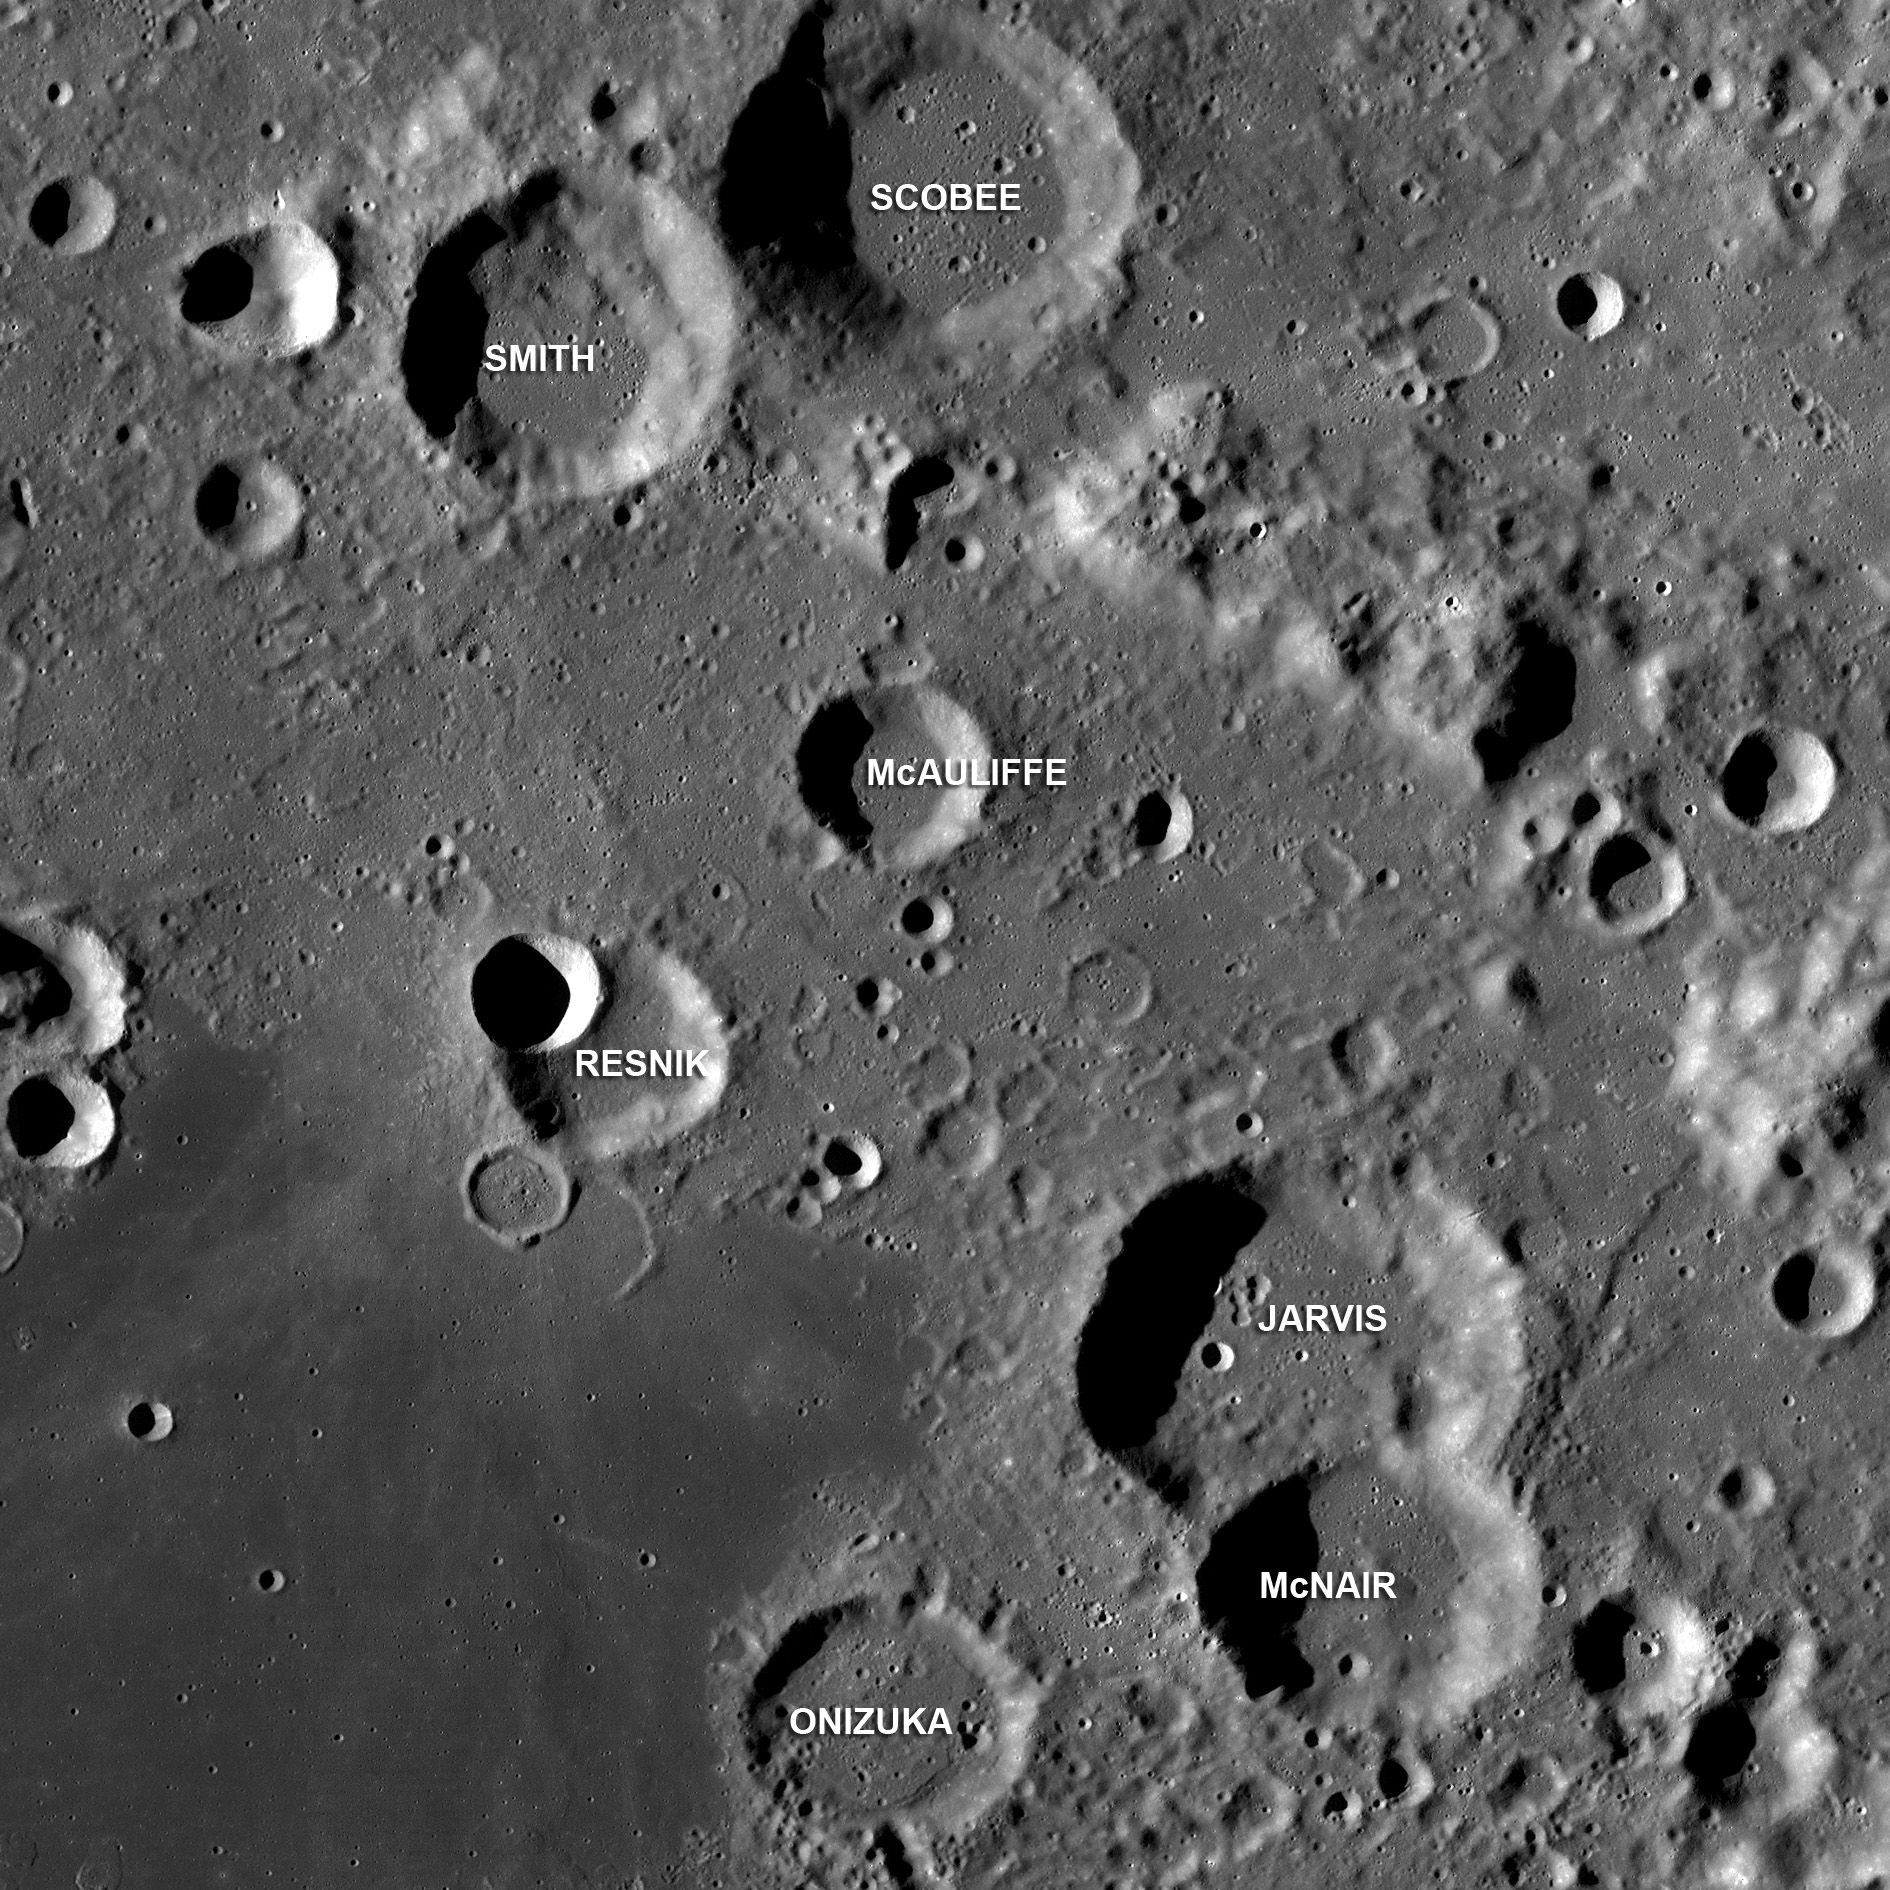 Challenger Astronauts Memorialized on the Moon   Moon NASA Science